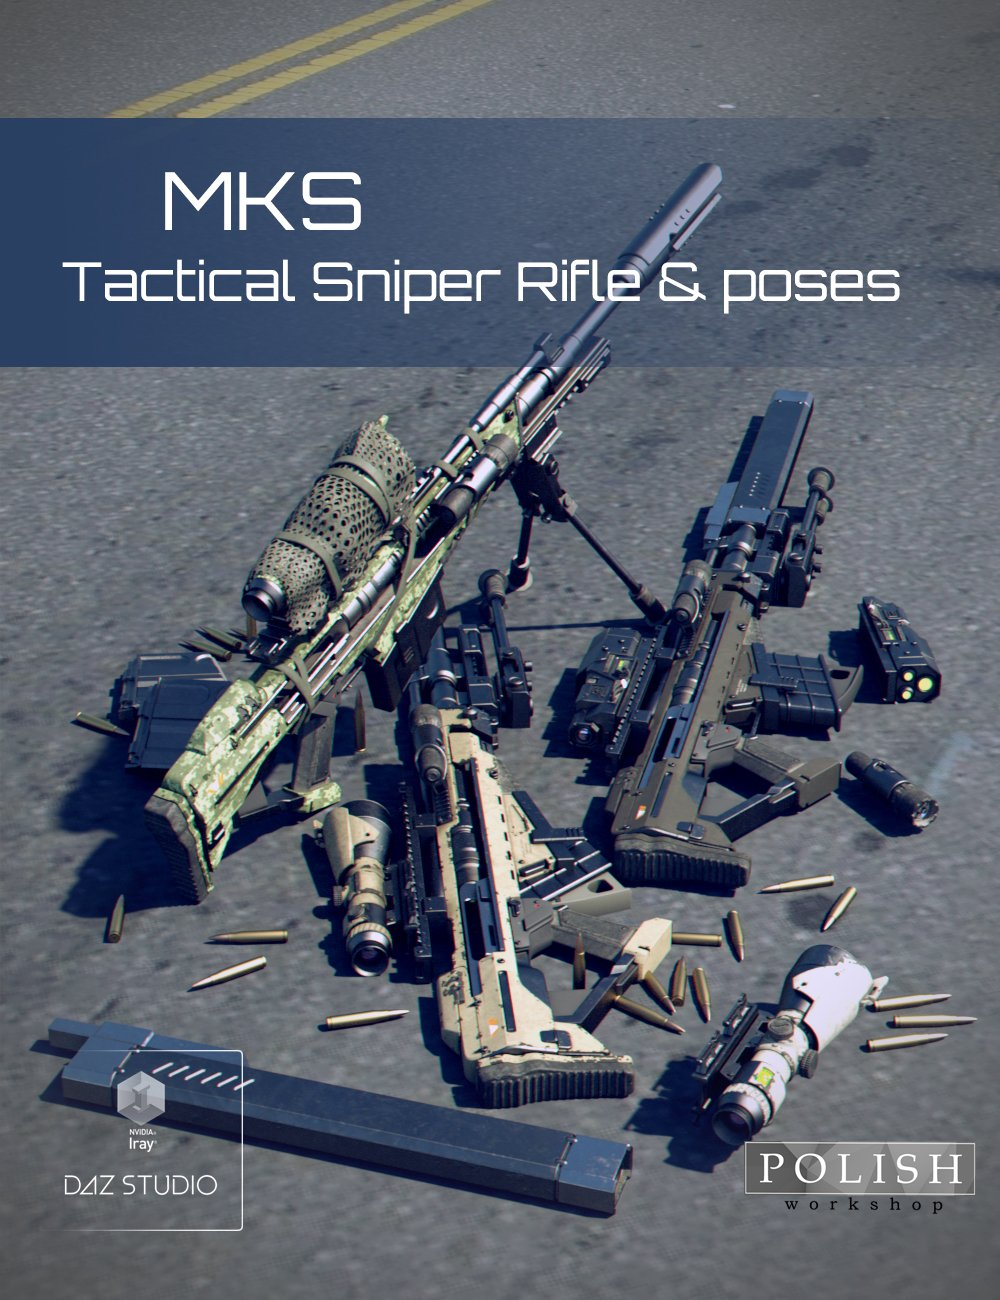 MKS Tactical Sniper Rifle and Poses by: Polish, 3D Models by Daz 3D